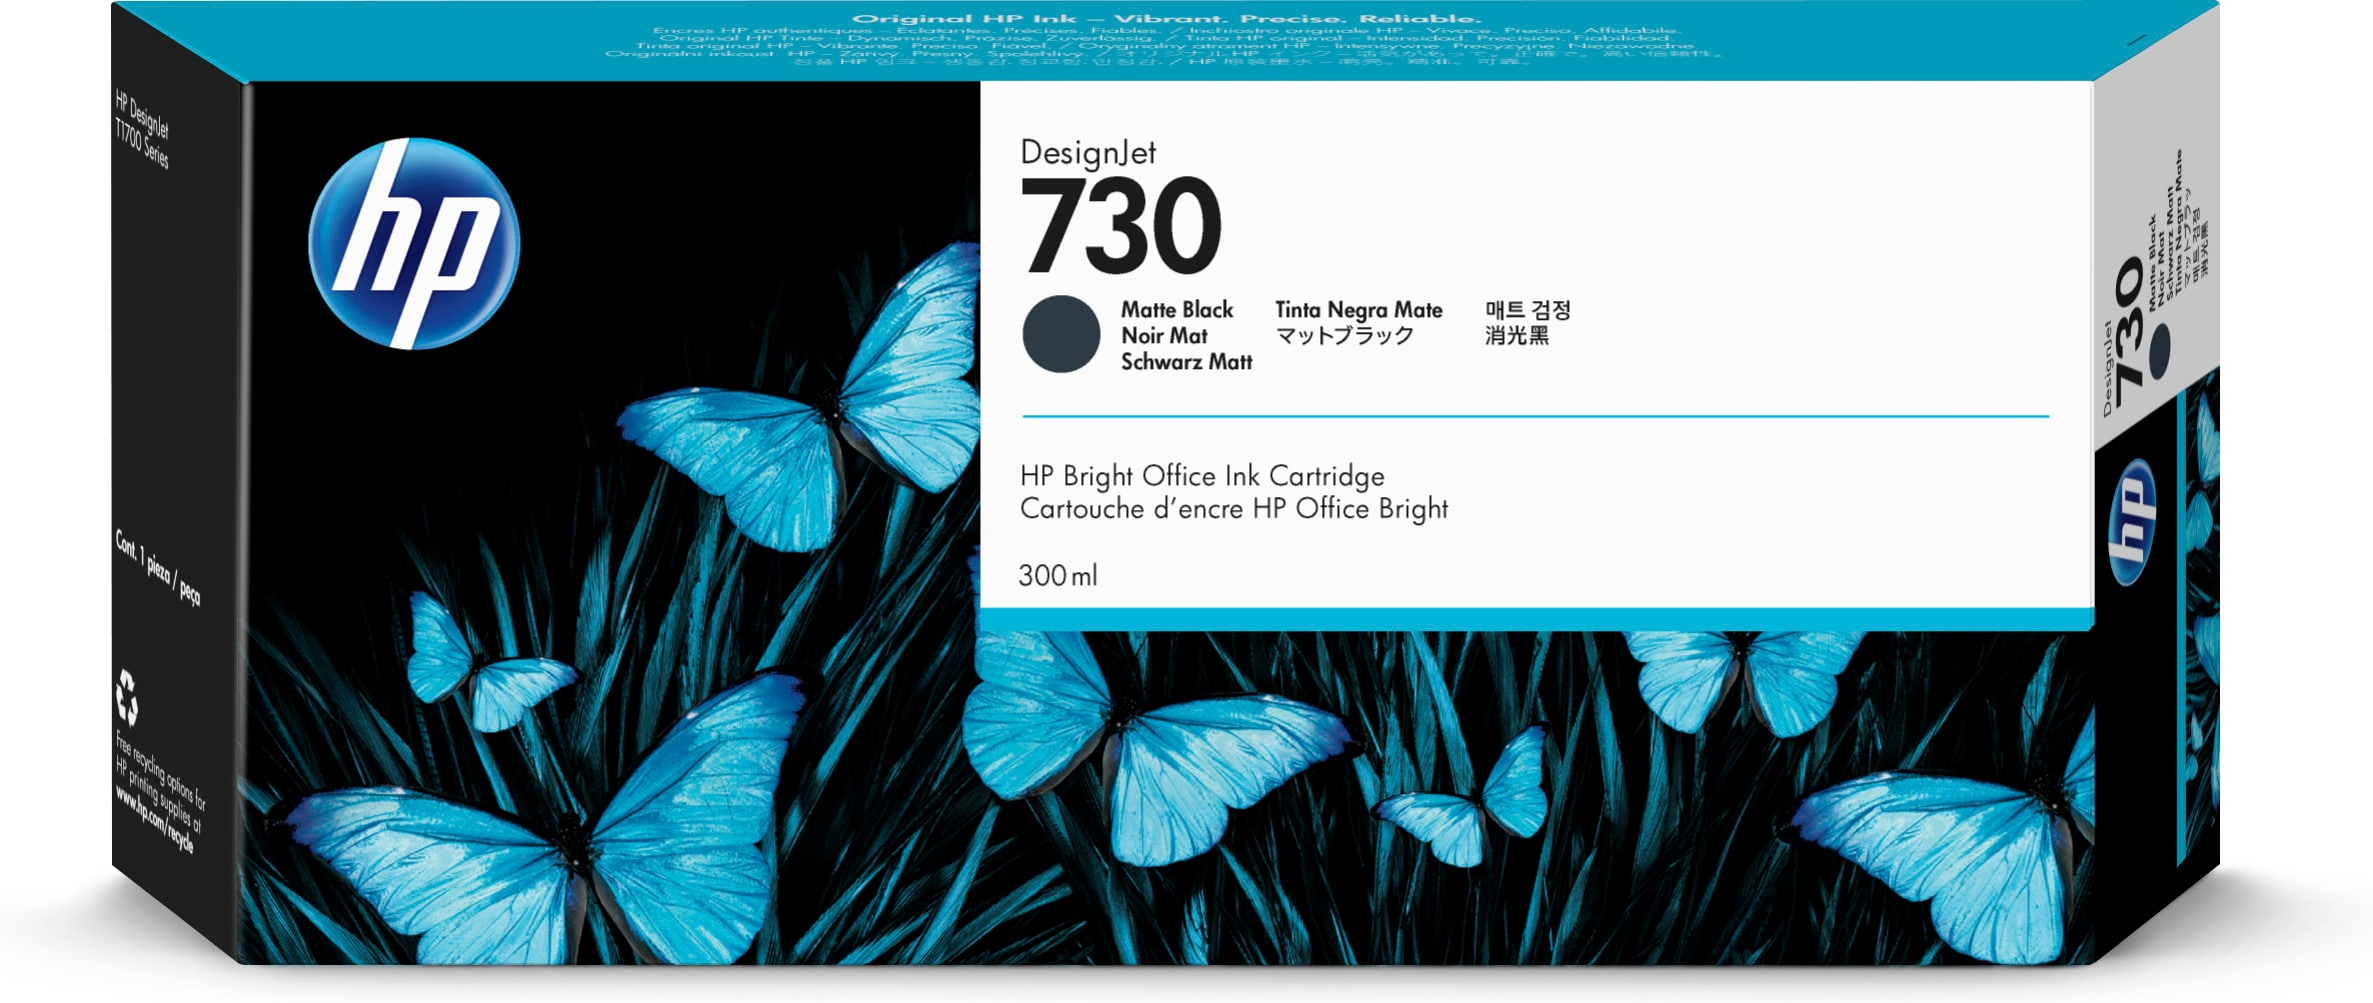 HP No. 730 Ink Cartridge Matte Black - 300ml P2v71a